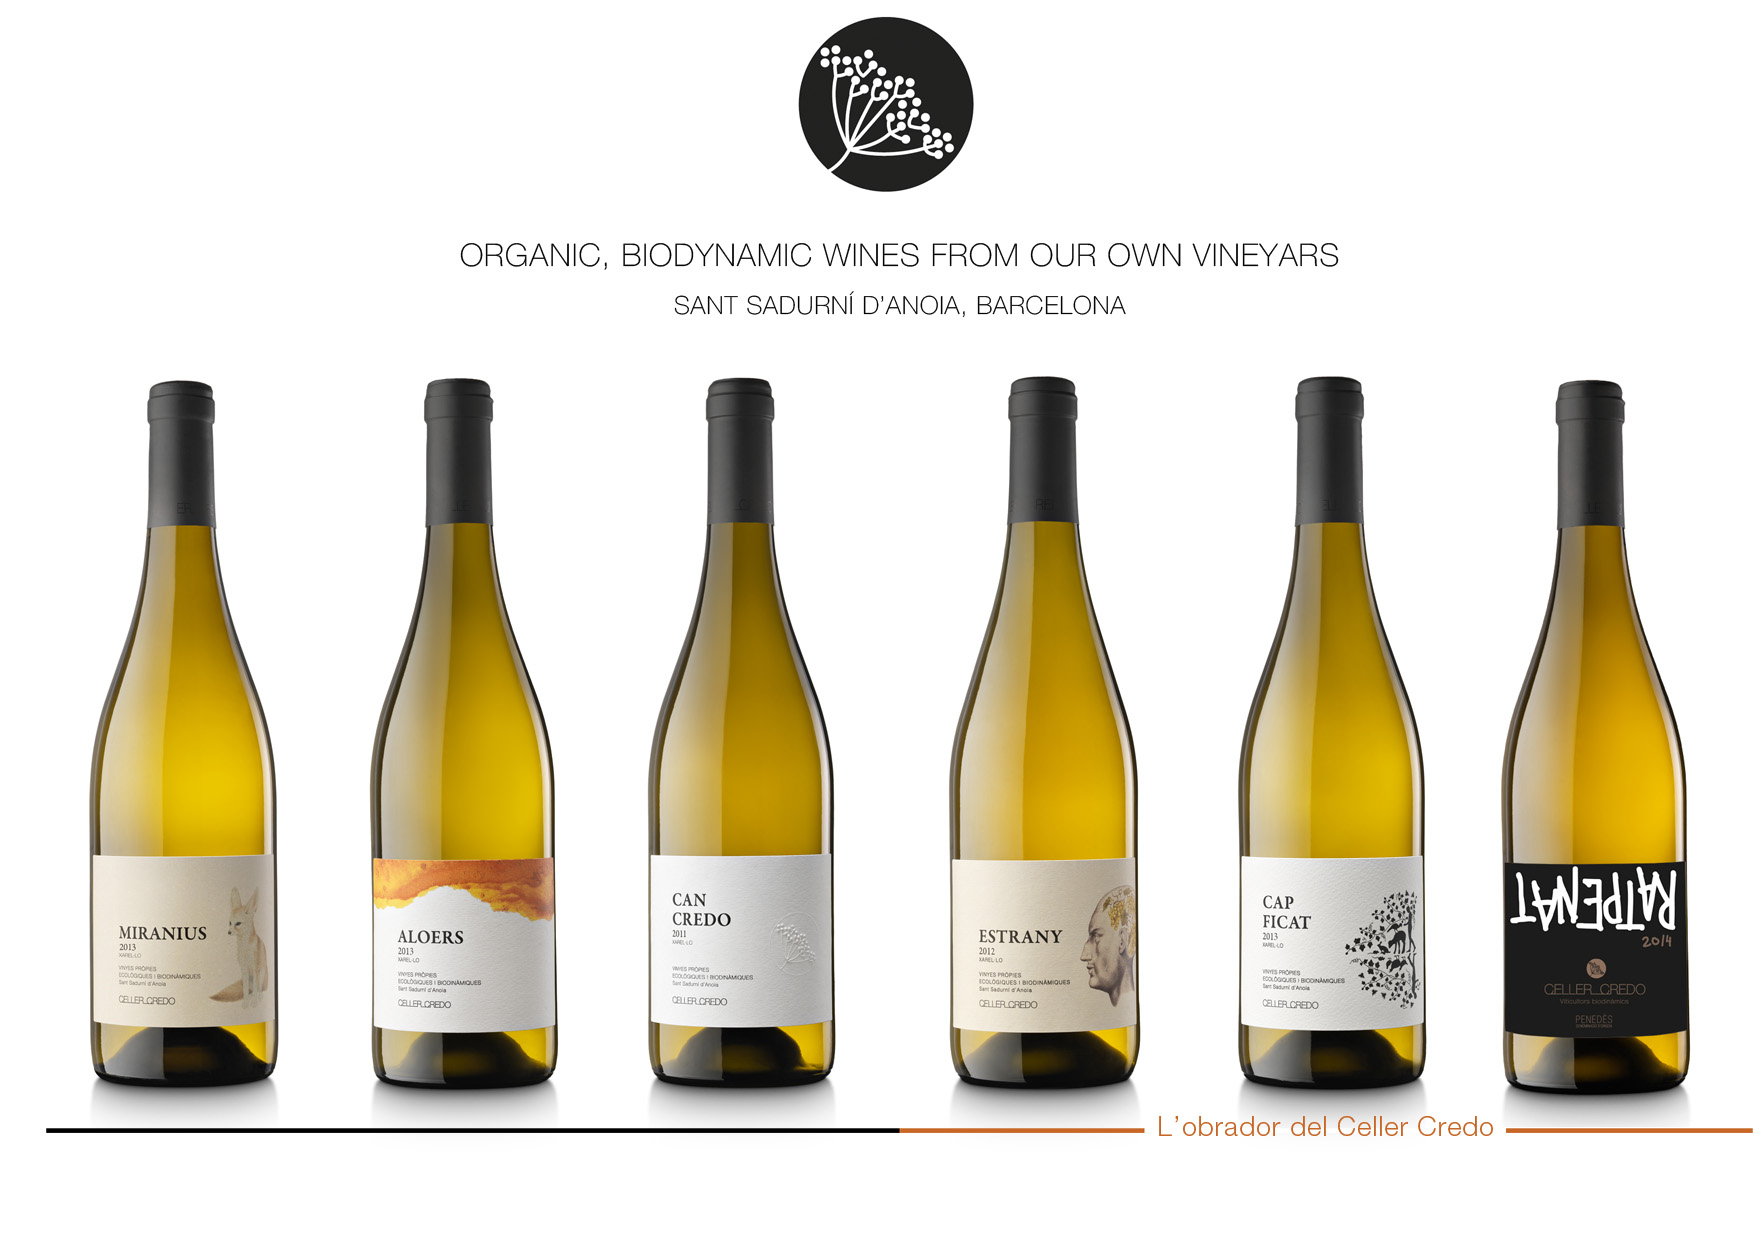 Organic, bioydinamic wines from our own vineyards